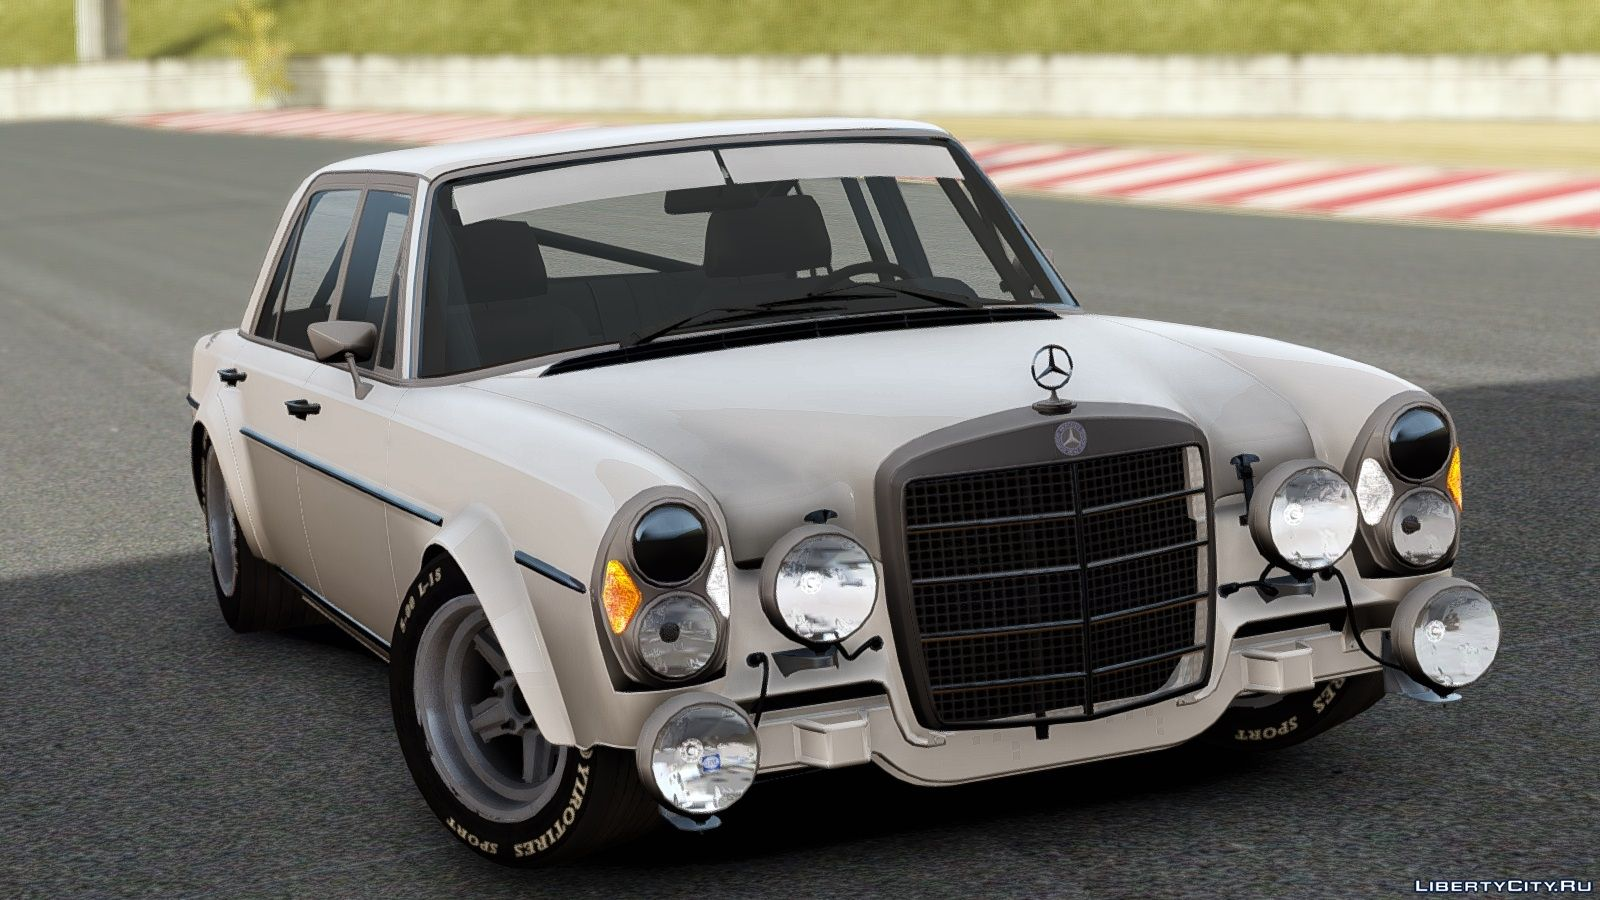 Mercedes benz 300 sel 6 8 amg w109 gta 4 for Mercedes benz amg 6 3